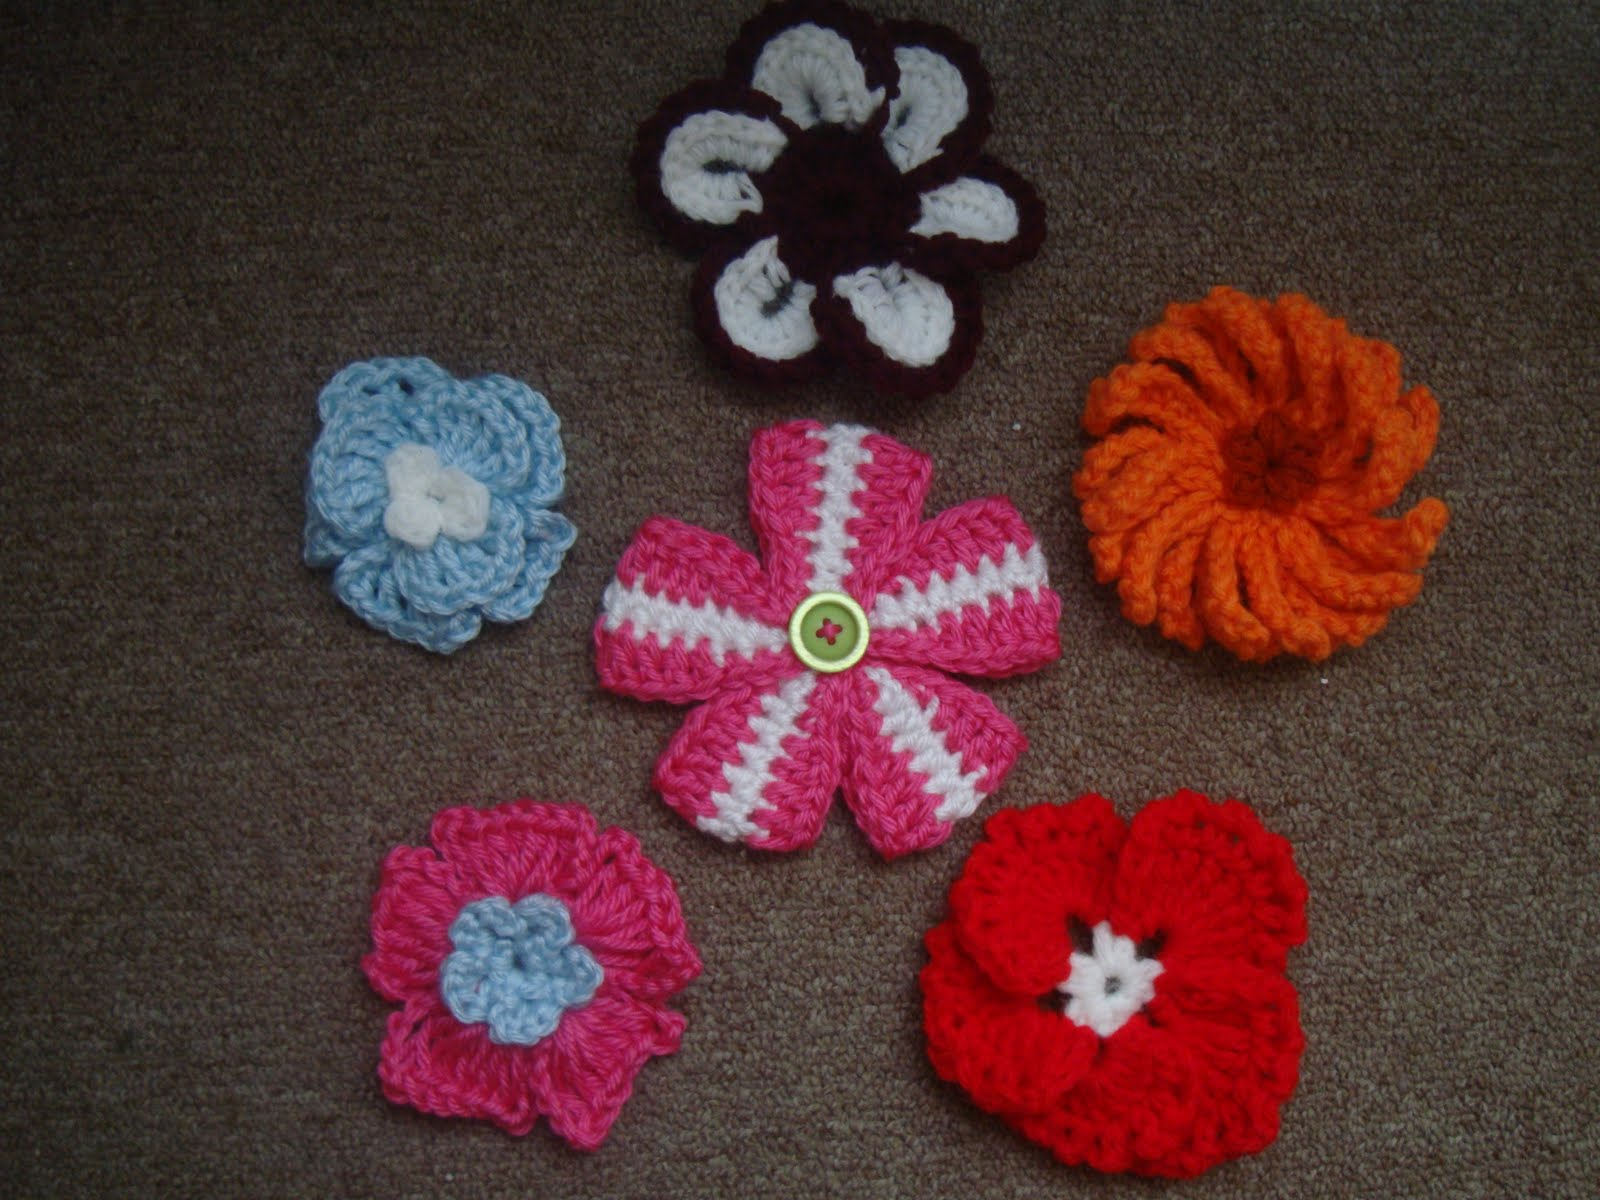 Crochet Crazy Mama April Showers Brings May Flowers